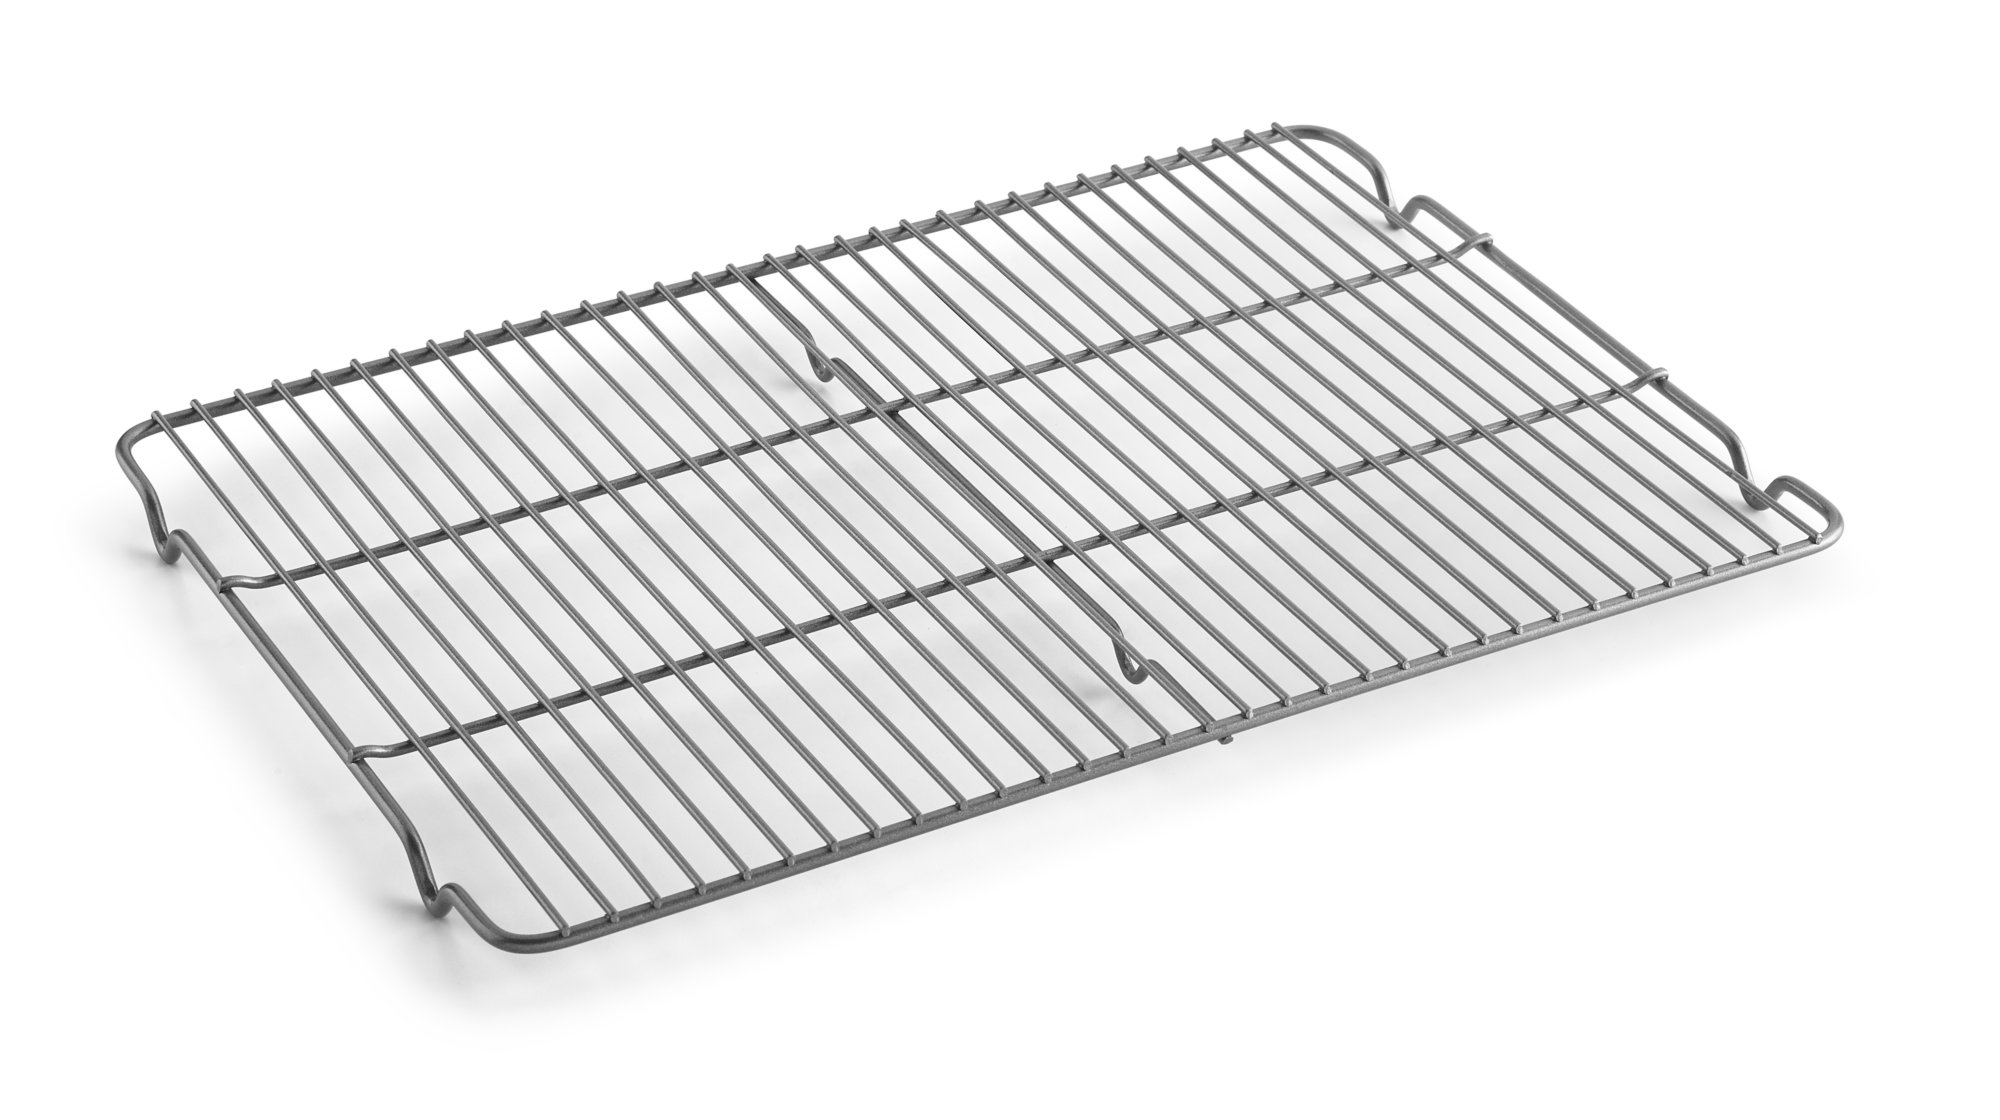 Select by Calpahlon Nonstick Bakeware Cooling Rack